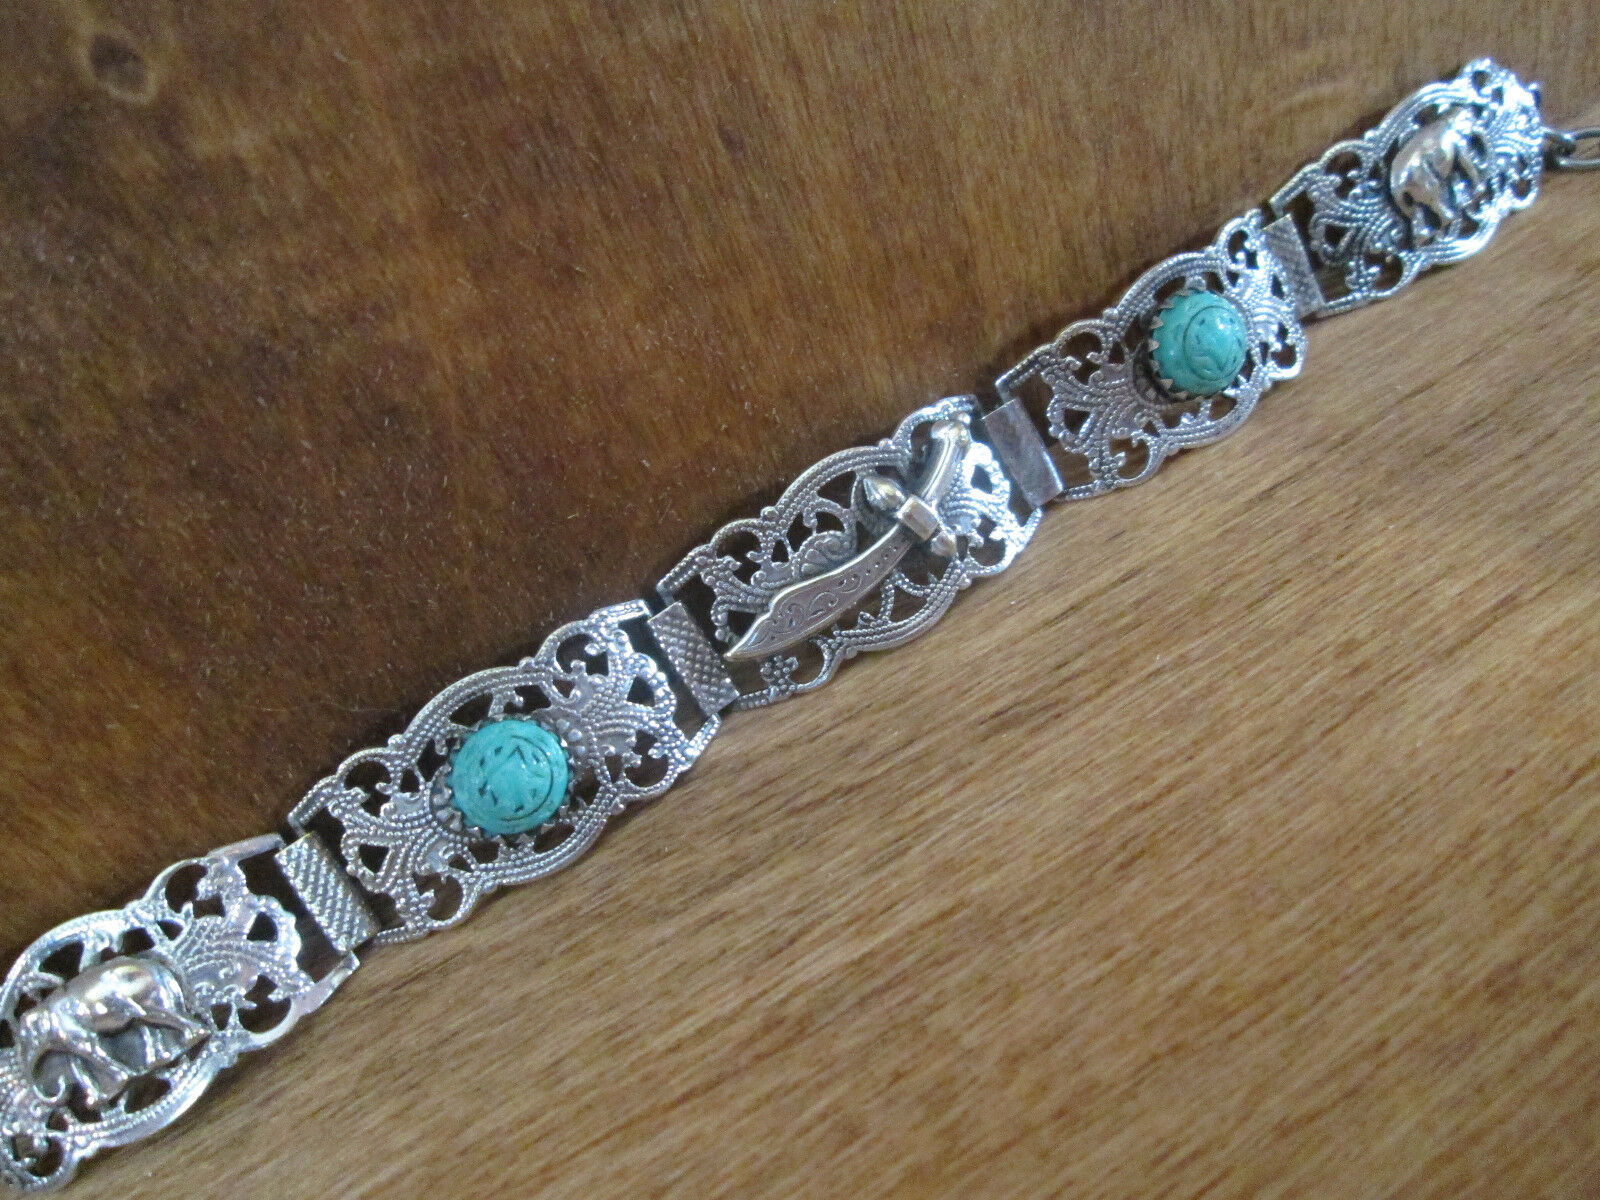 1923 TURKISH Cuff Bracelet, Sterling Silver Pierced Work with Hamsa Charm Clasp